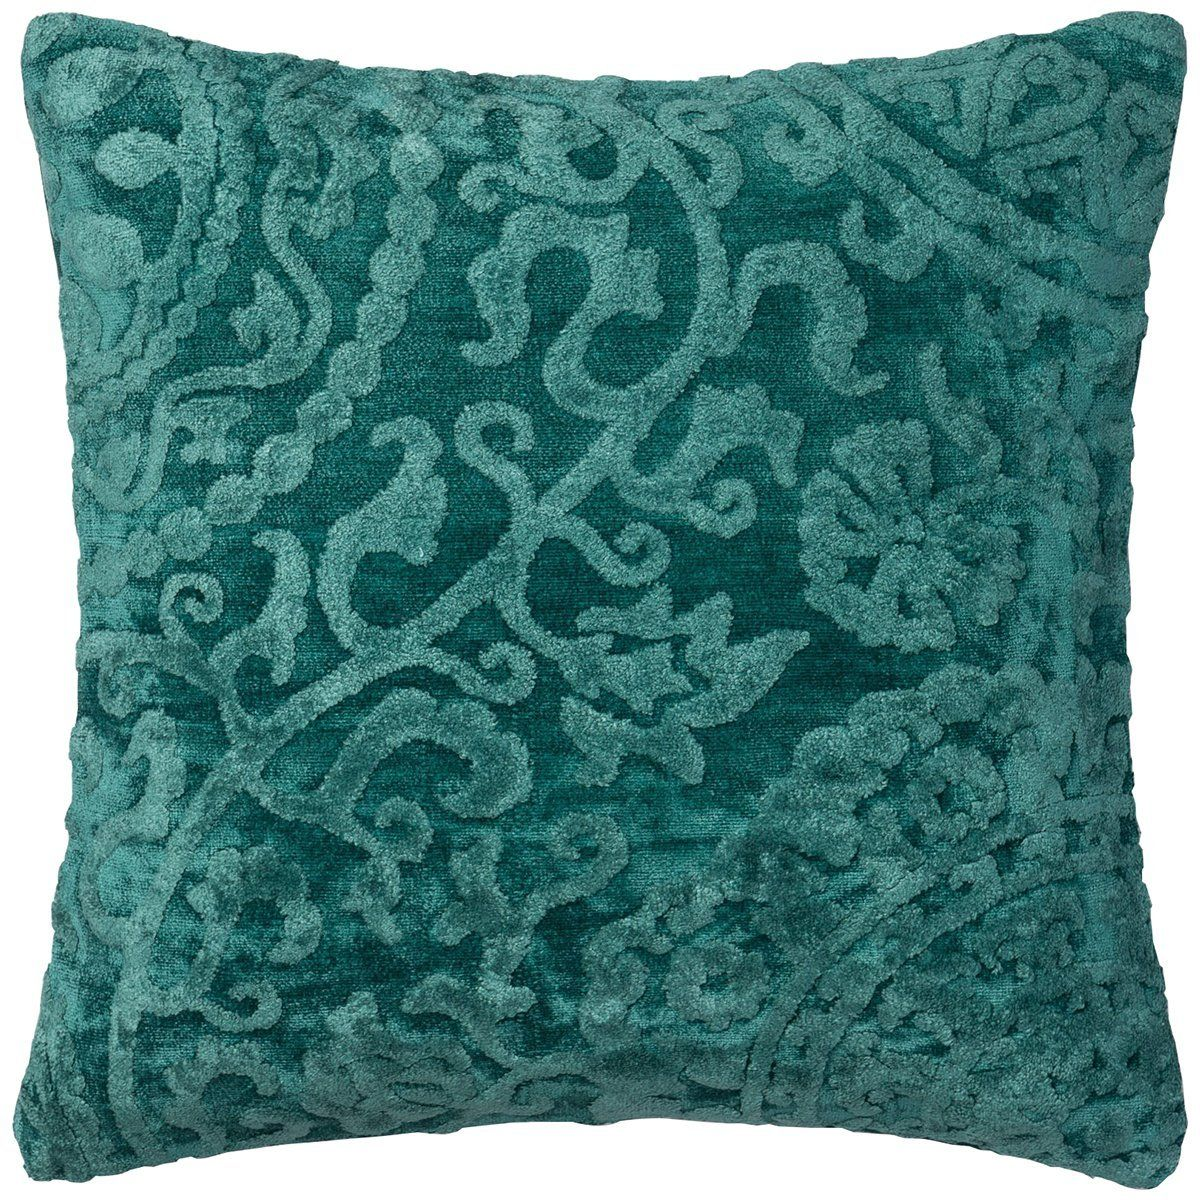 The Pillow Collection Cenobia Floral Jade Down Filled Throw Pillow